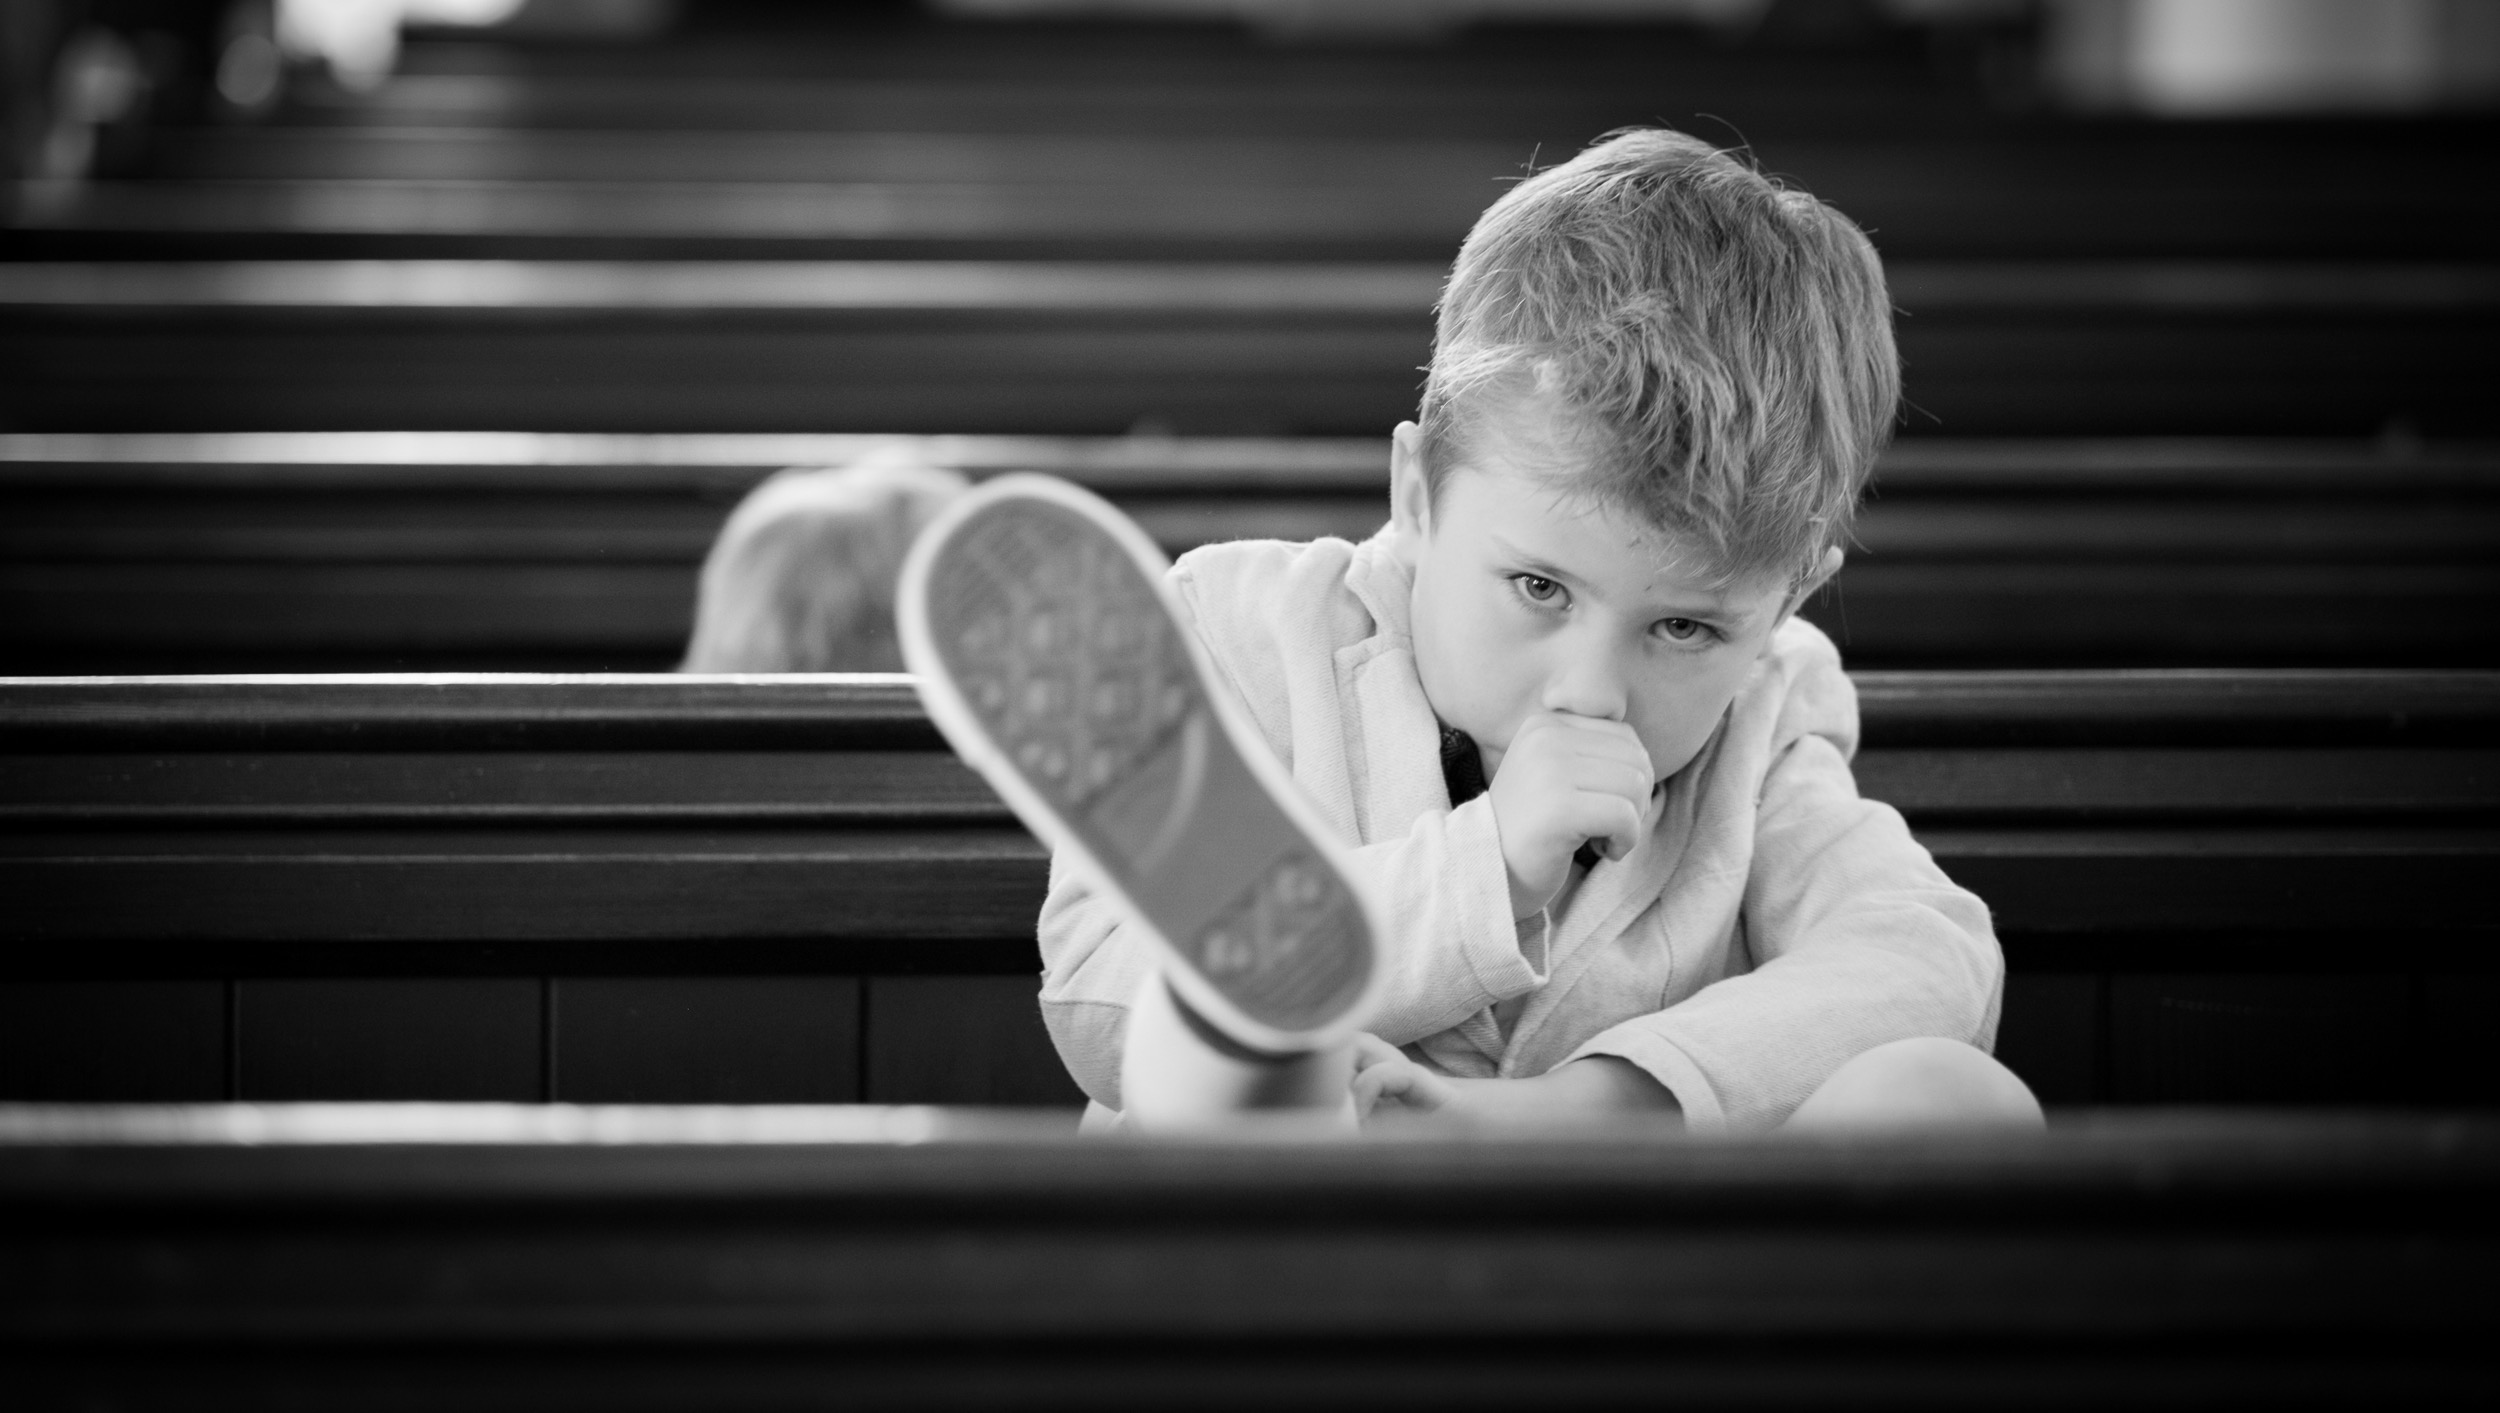 Amusing young man or boy in the church looking bored and grumpy waiting for the wedding to start